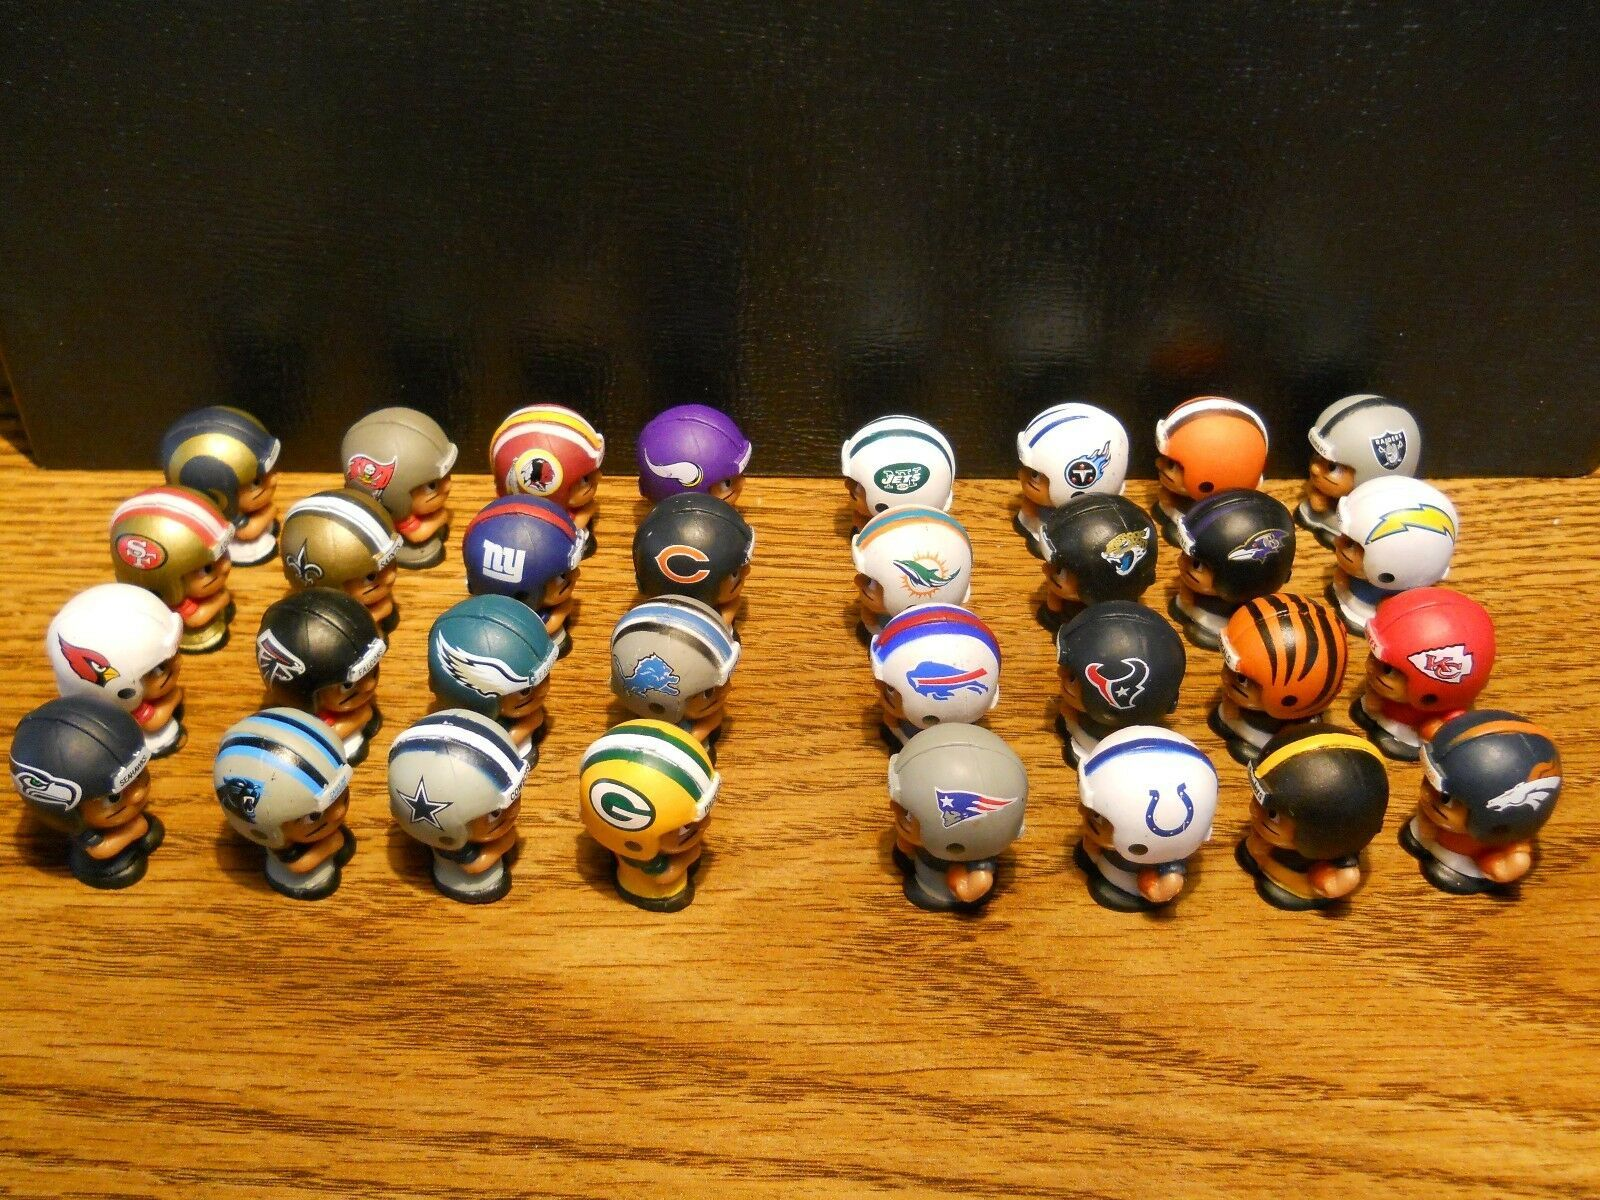 2013 NFL FOOTBALL TEENYMATES FIGURES SERIES 2 -  PICK YOUR FOOTBALL TEAM FIGURE